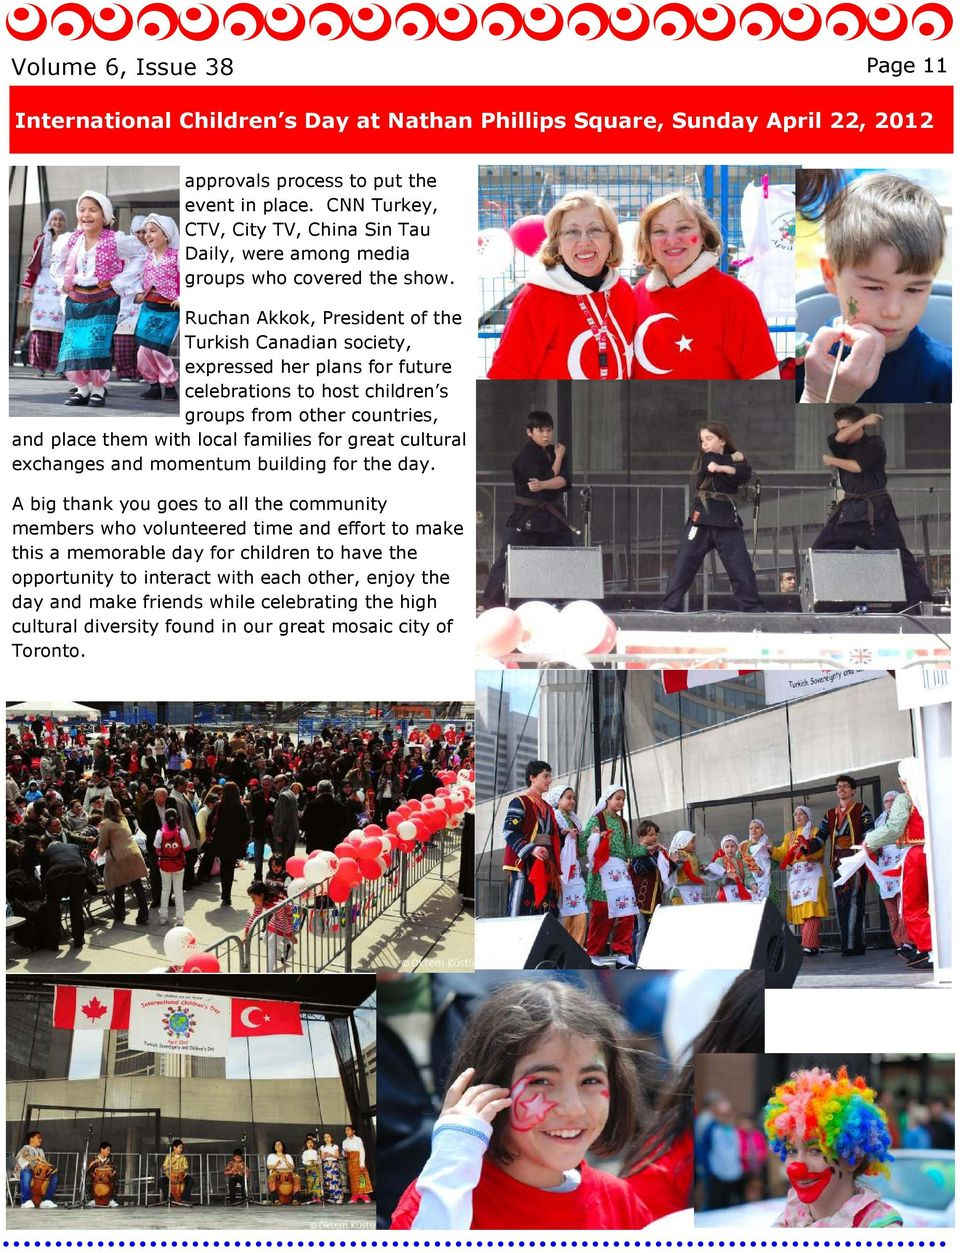 Ruchan Akkok, President of the Turkish Canadian society, expressed her plans for future celebrations to host children s groups from other countries, and place them with local families for